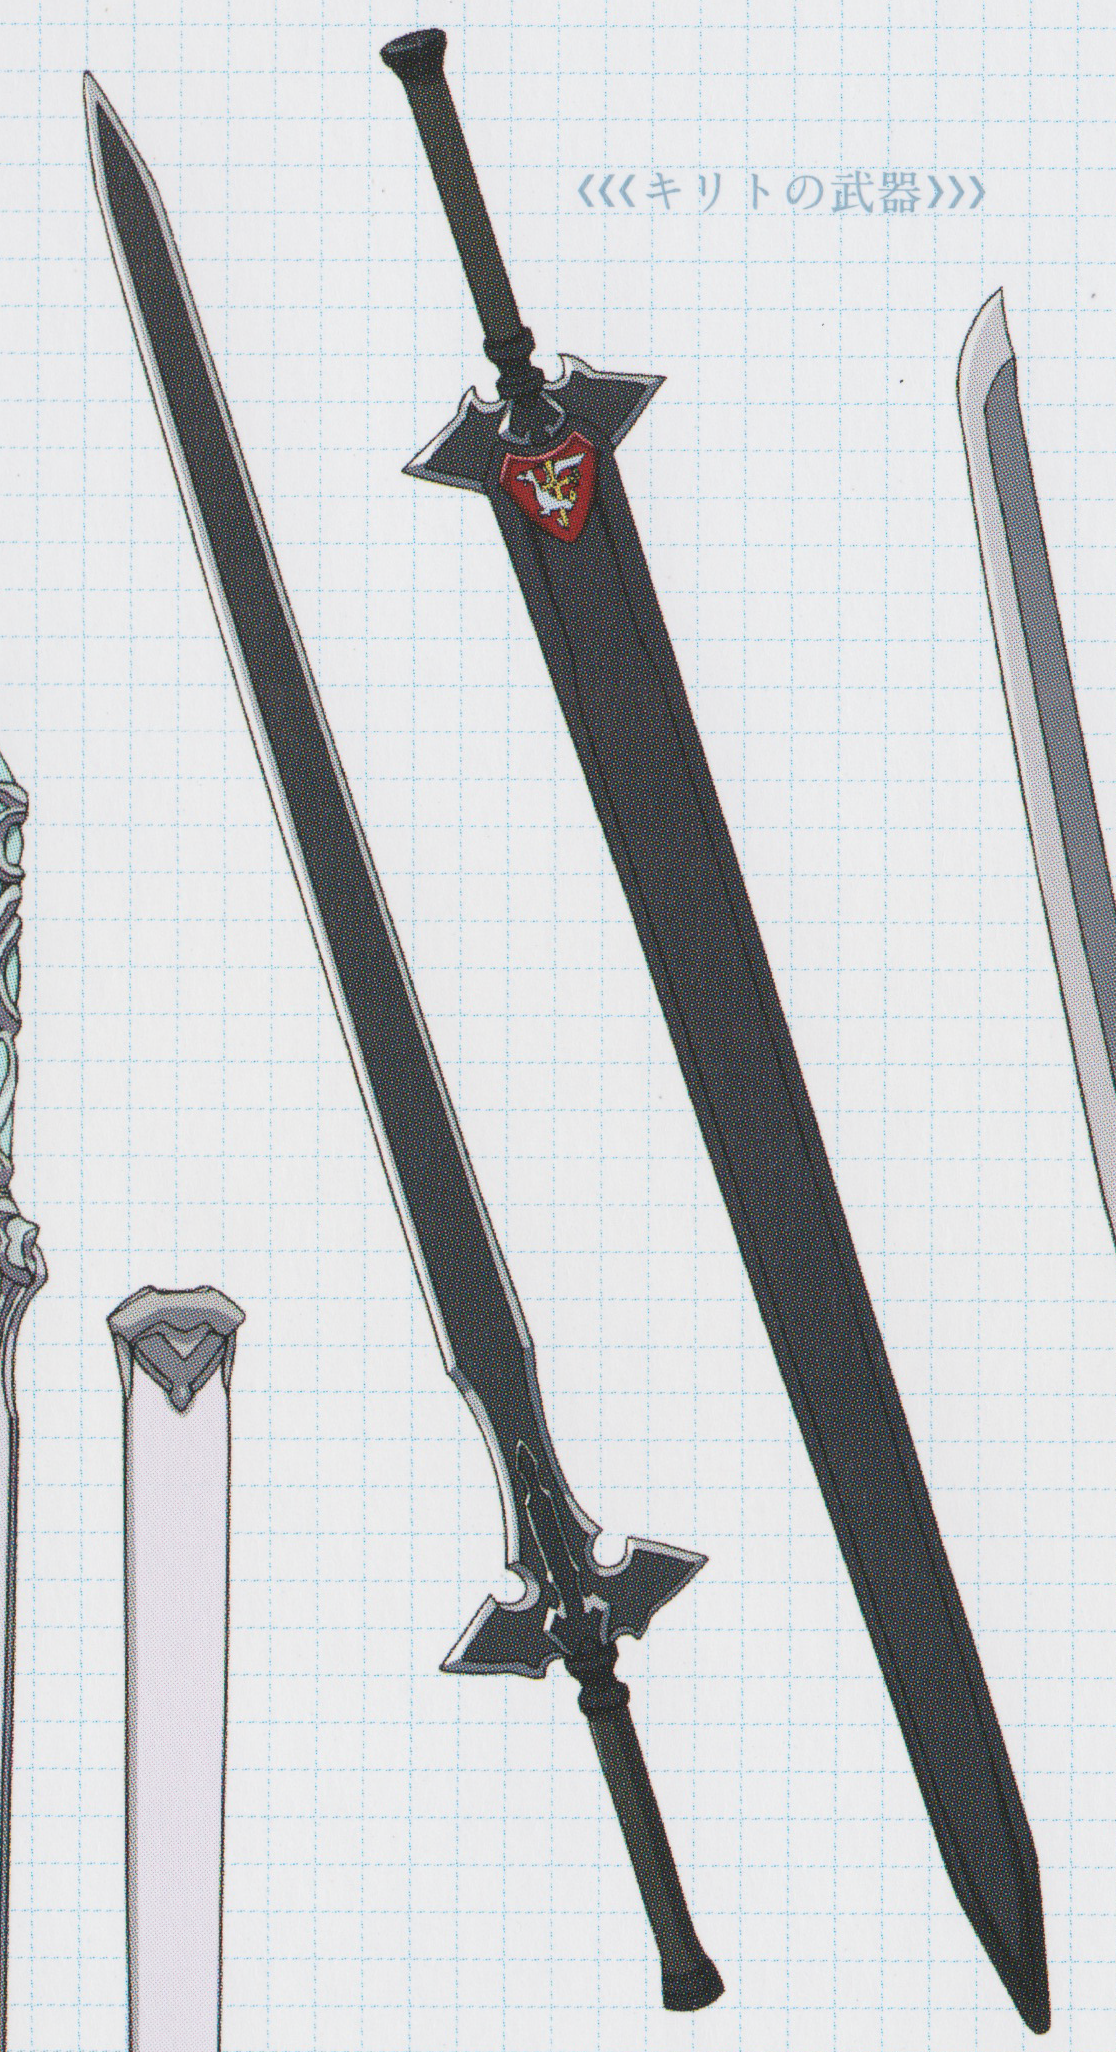 does anyone have asuna sword picture which look like this